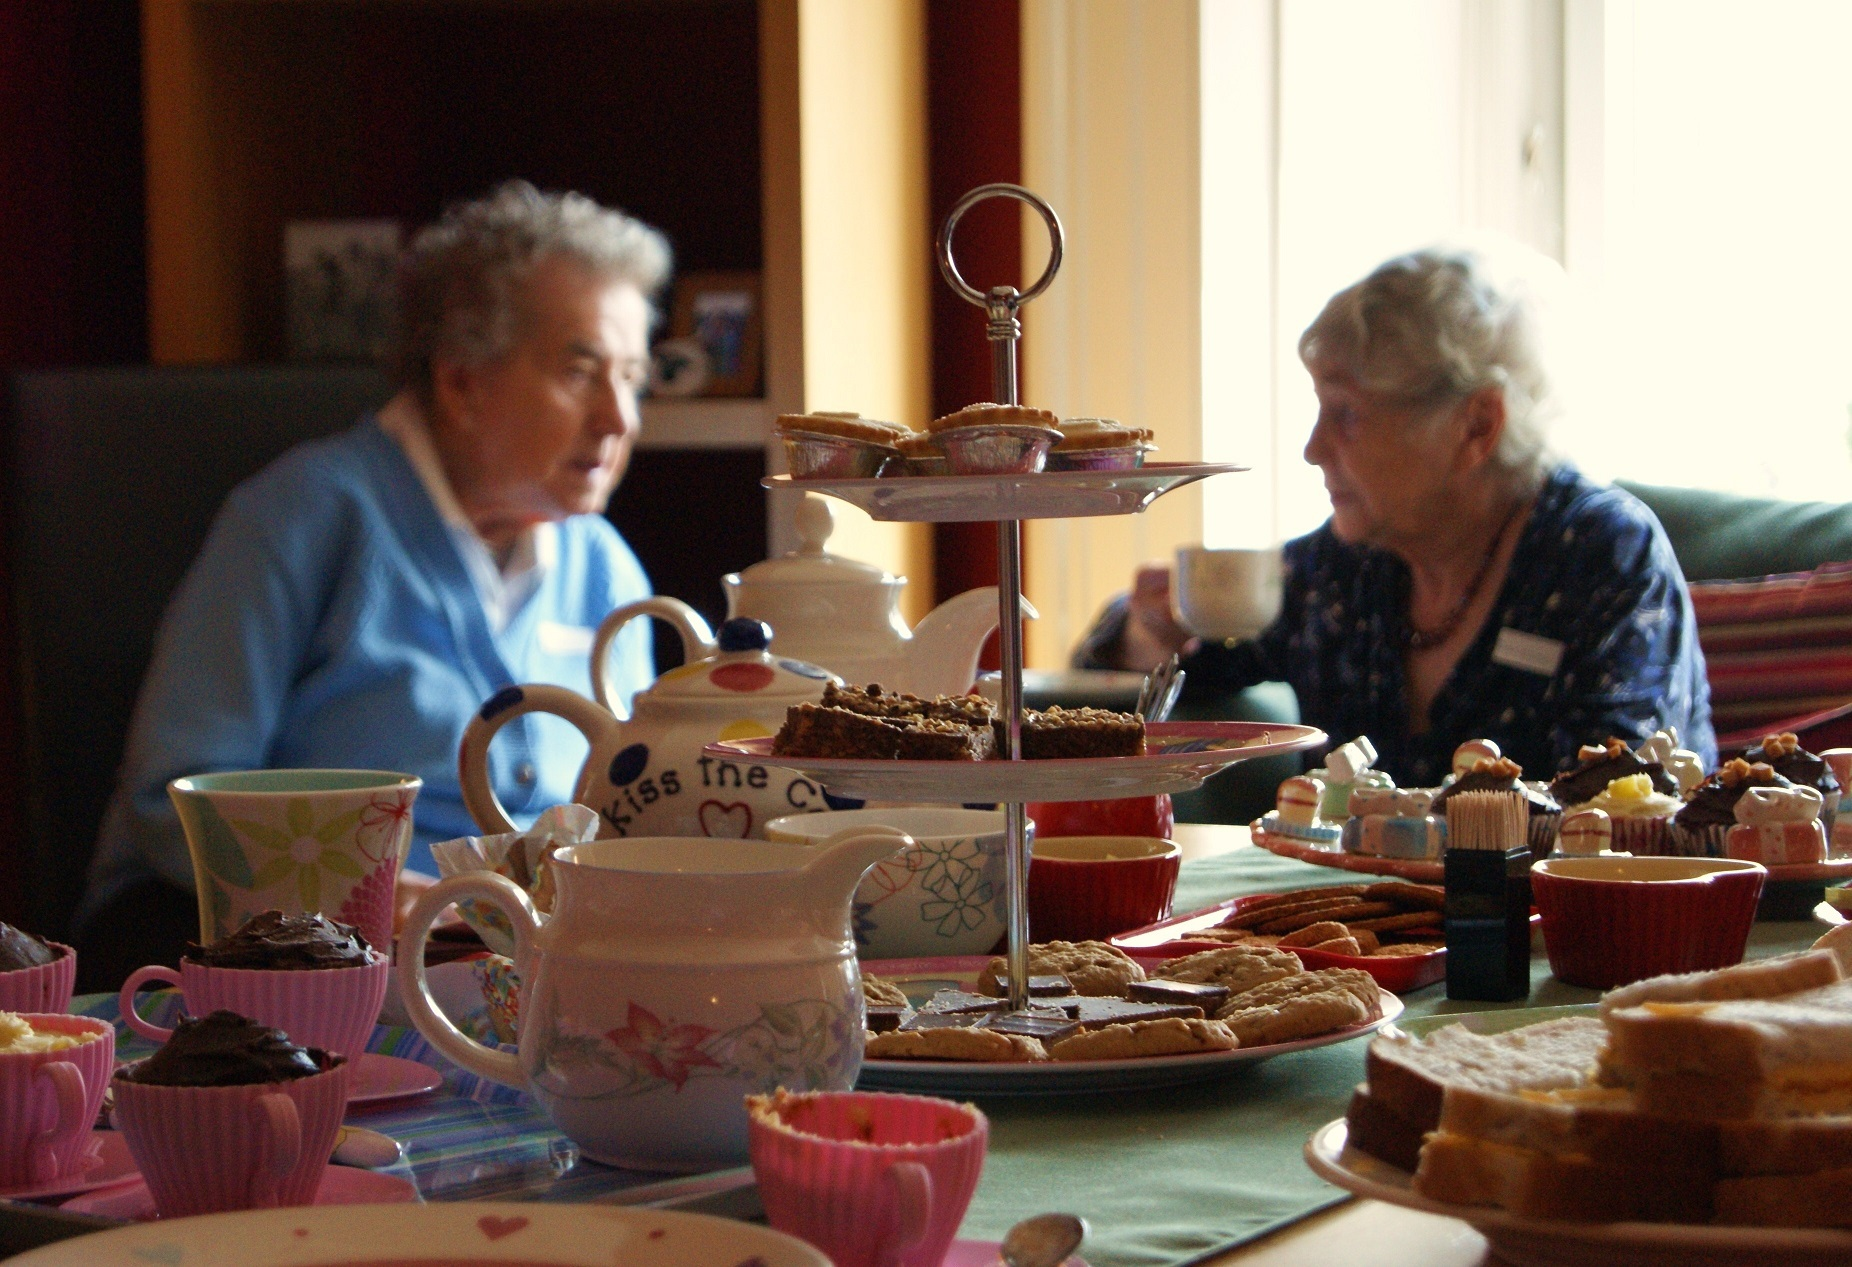 Greggs are offering free cakes and pastries for those hosting tea parties for the elderly (Contact the Elderly)